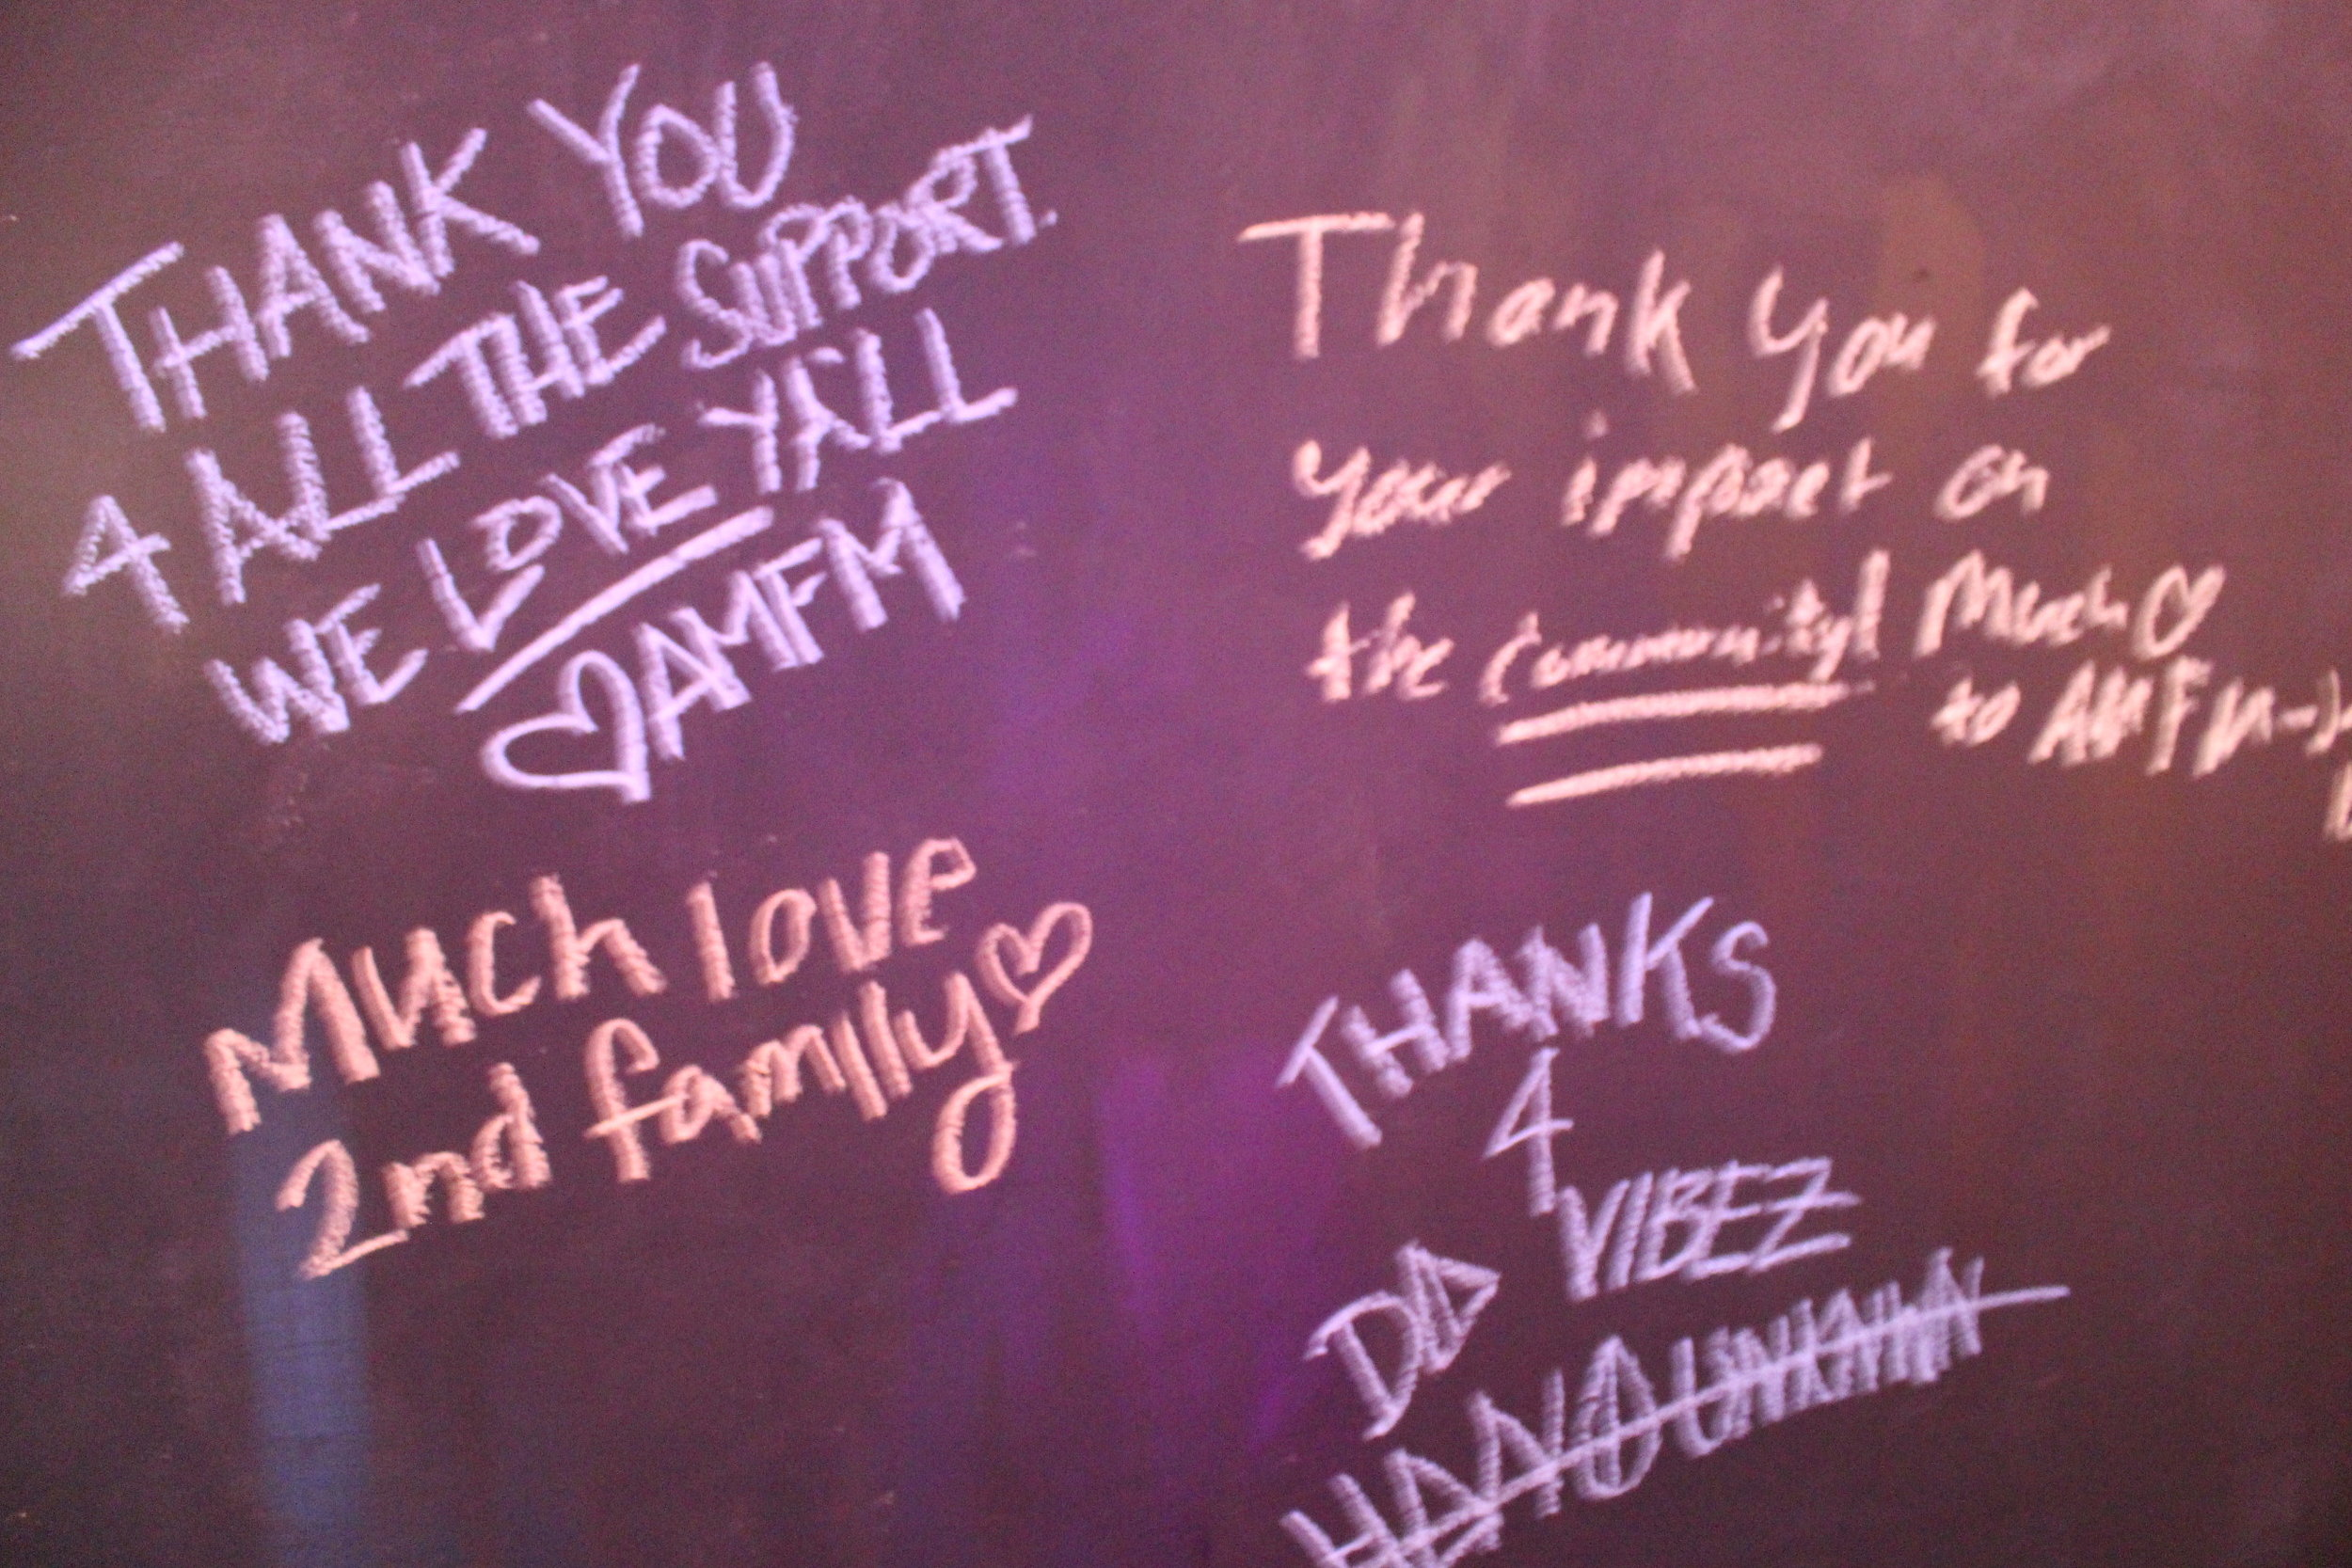 Partygoers left messages of support for AMFM